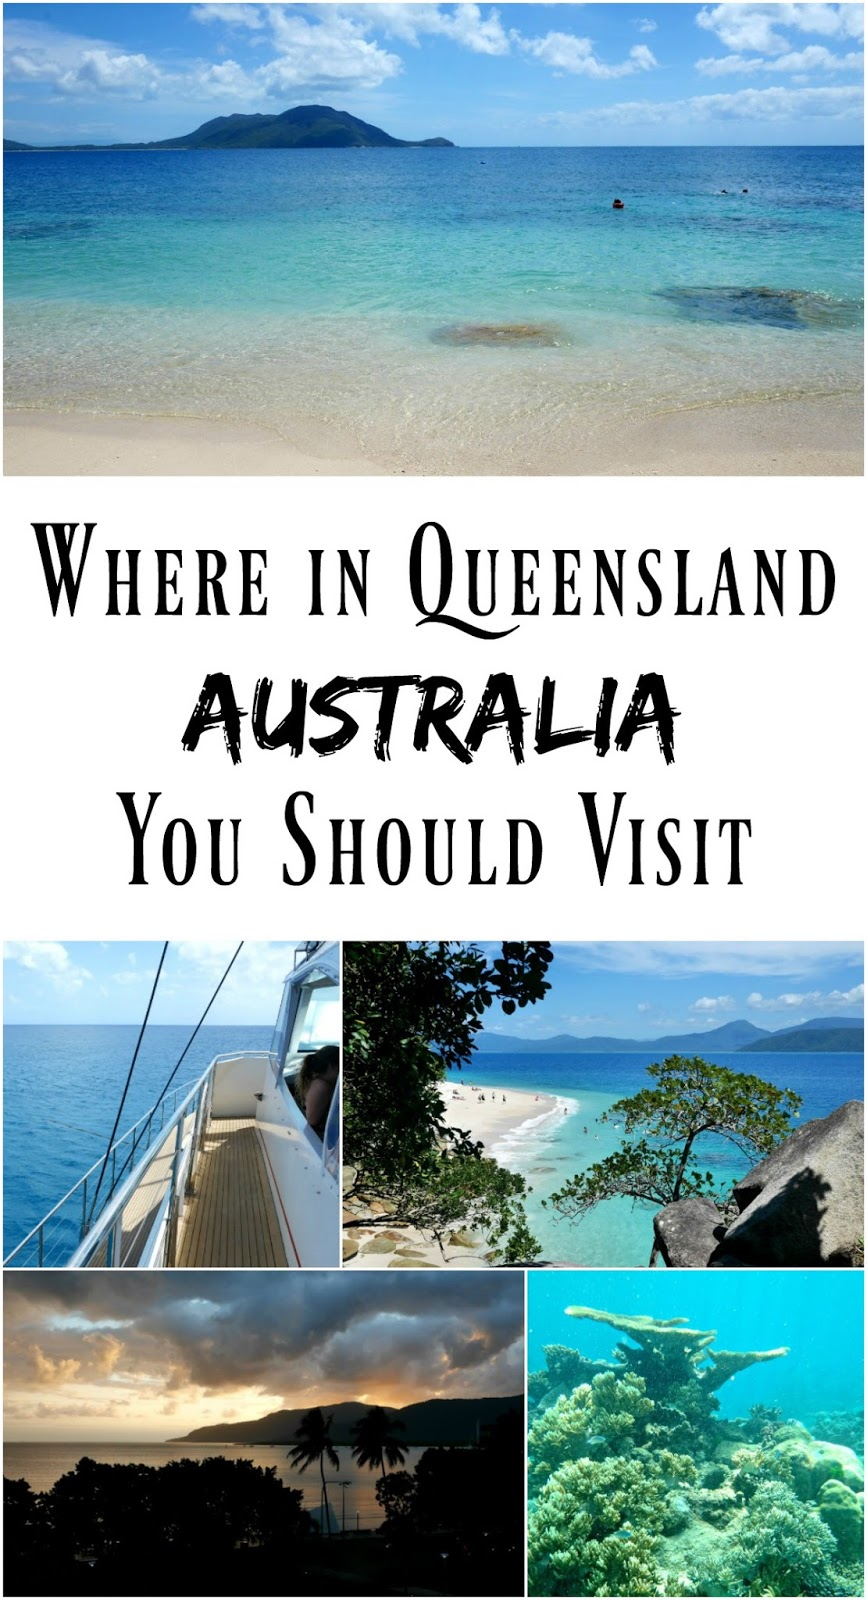 PIN FOR LATER: Where in Queensland Australia you should visit depending on what sort of vacation you enjoy, and WHEN you should visit! Queensland has two seasons (wet and dry) and one season is when the deadly jellyfish are in the waters.